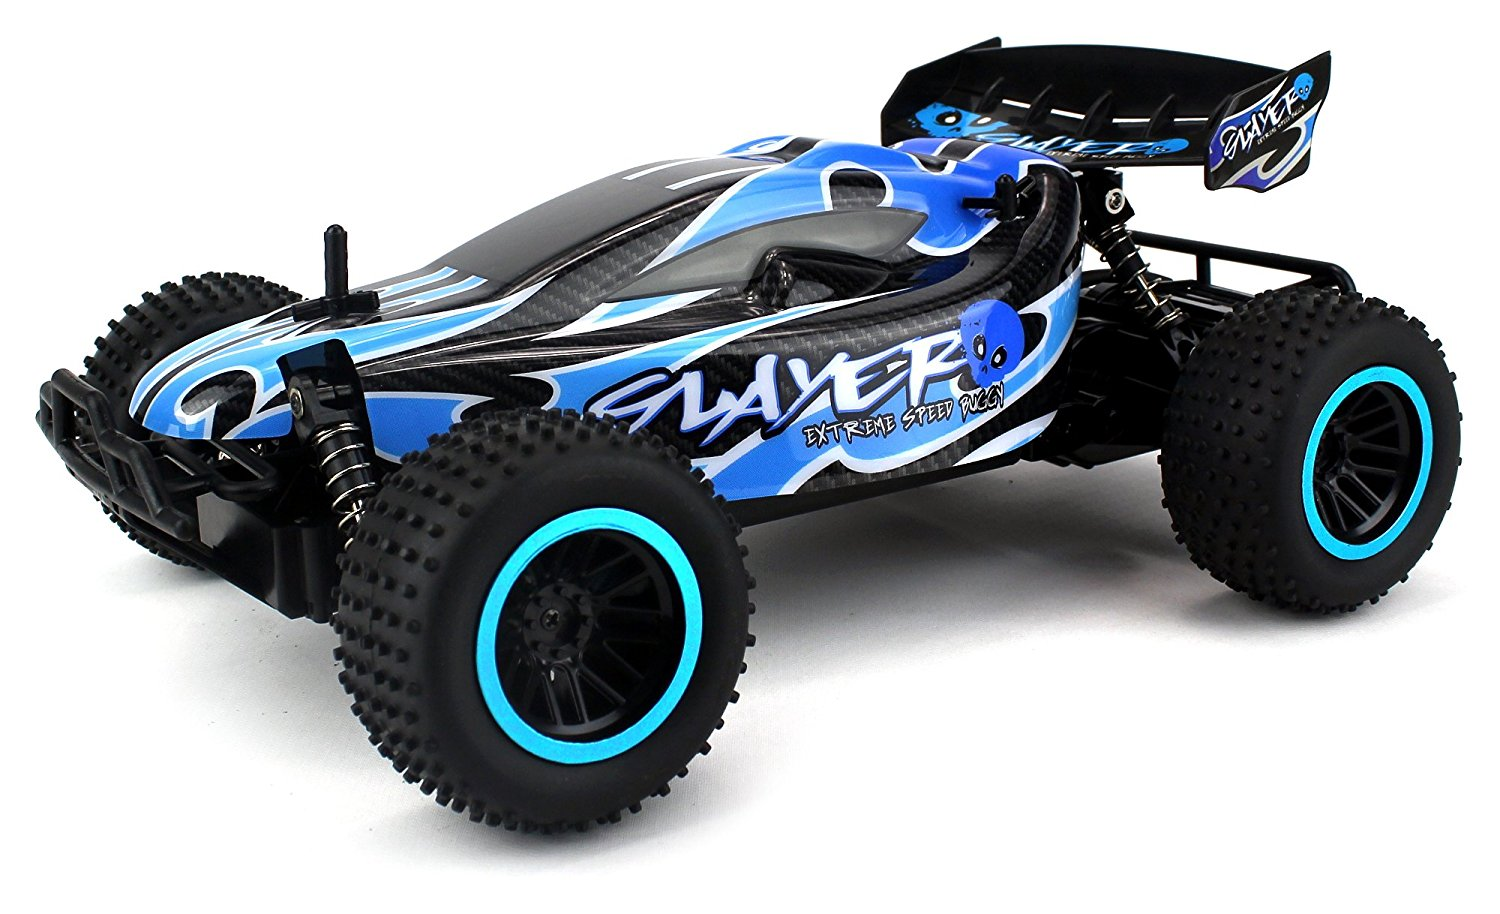 Skull Slayer Remote Control RC Buggy Car 2.4 GHz PRO System 1:12 Scale Size RTR w  Working Suspension, Spring... by Velocity Toys